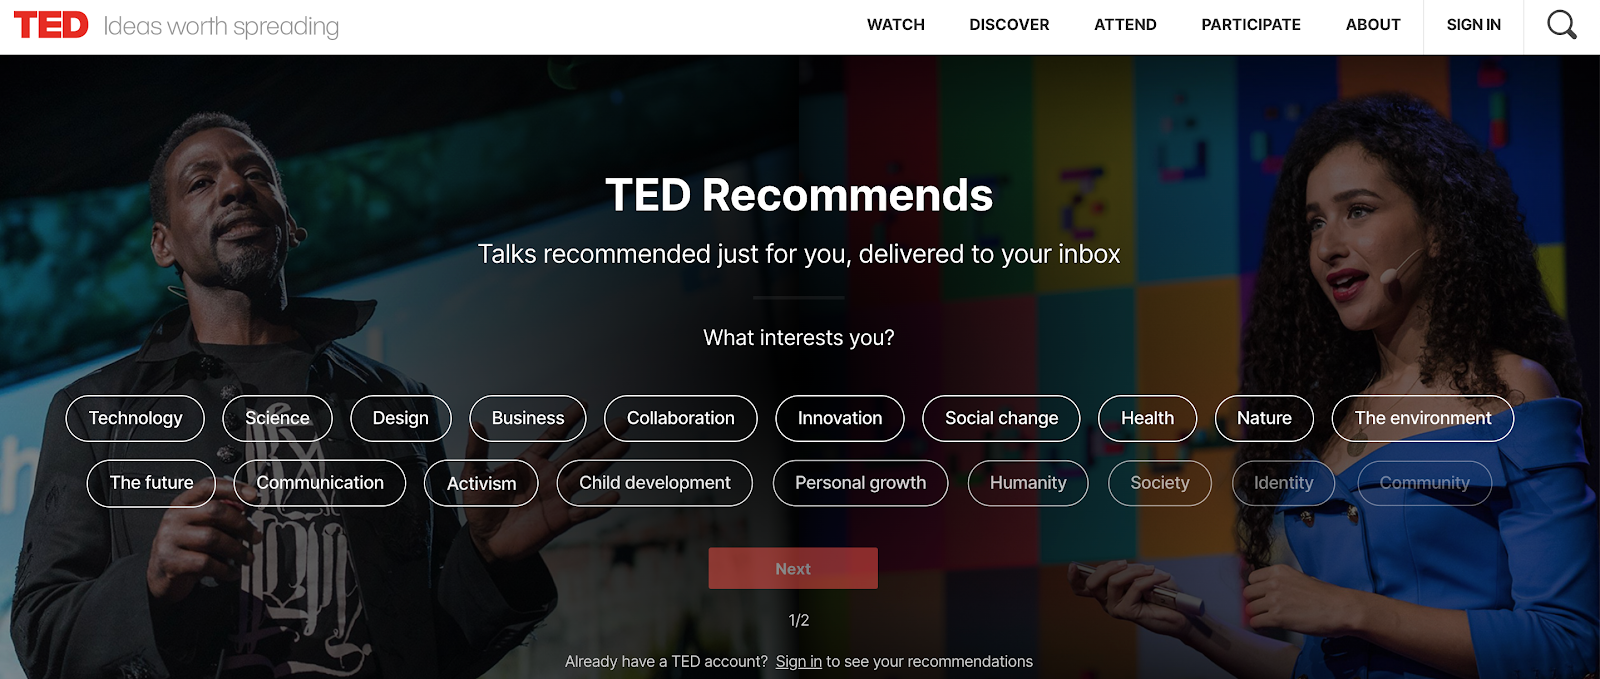 Ted, an alternative to watch inspirational video